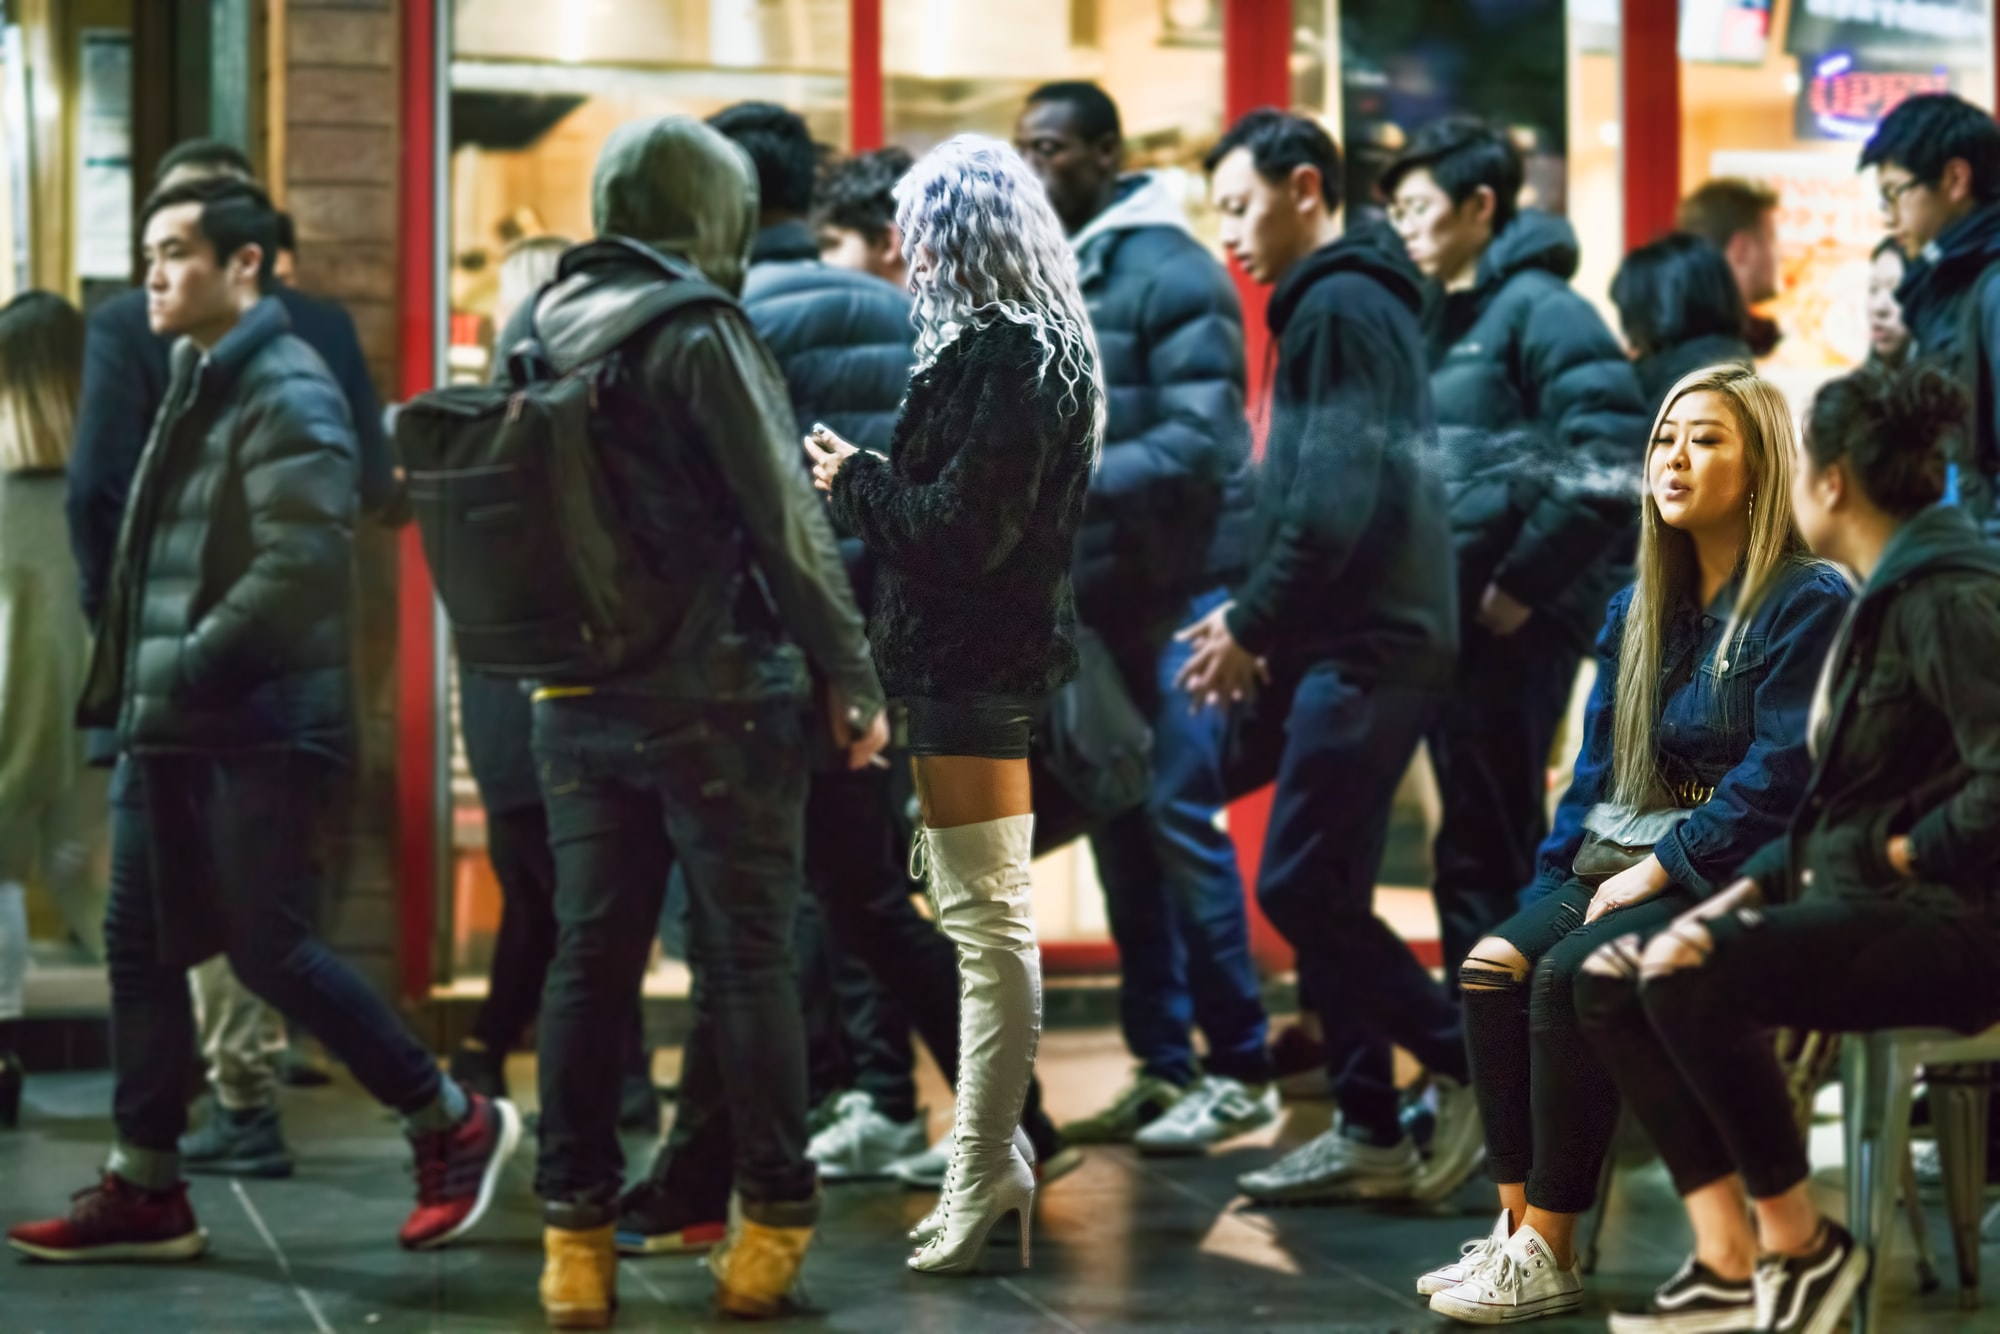 The scene outside a Chinatown night club as the patrons start to gather to make an entrance